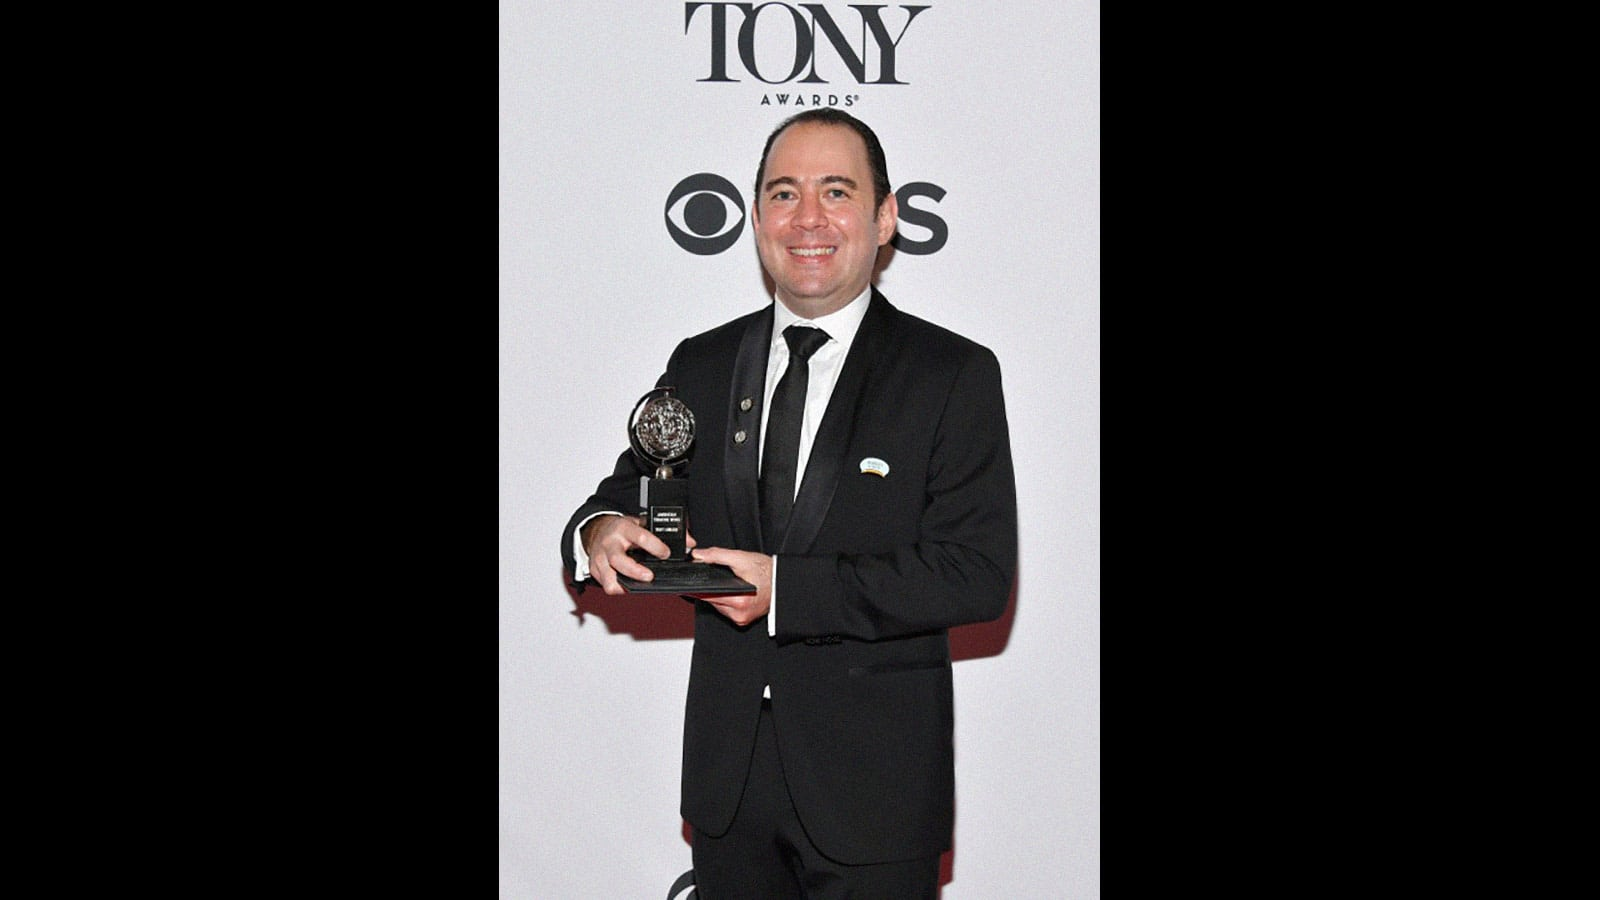 Kai Harada, Tony Awards winner for Best Sound Design in a Musical